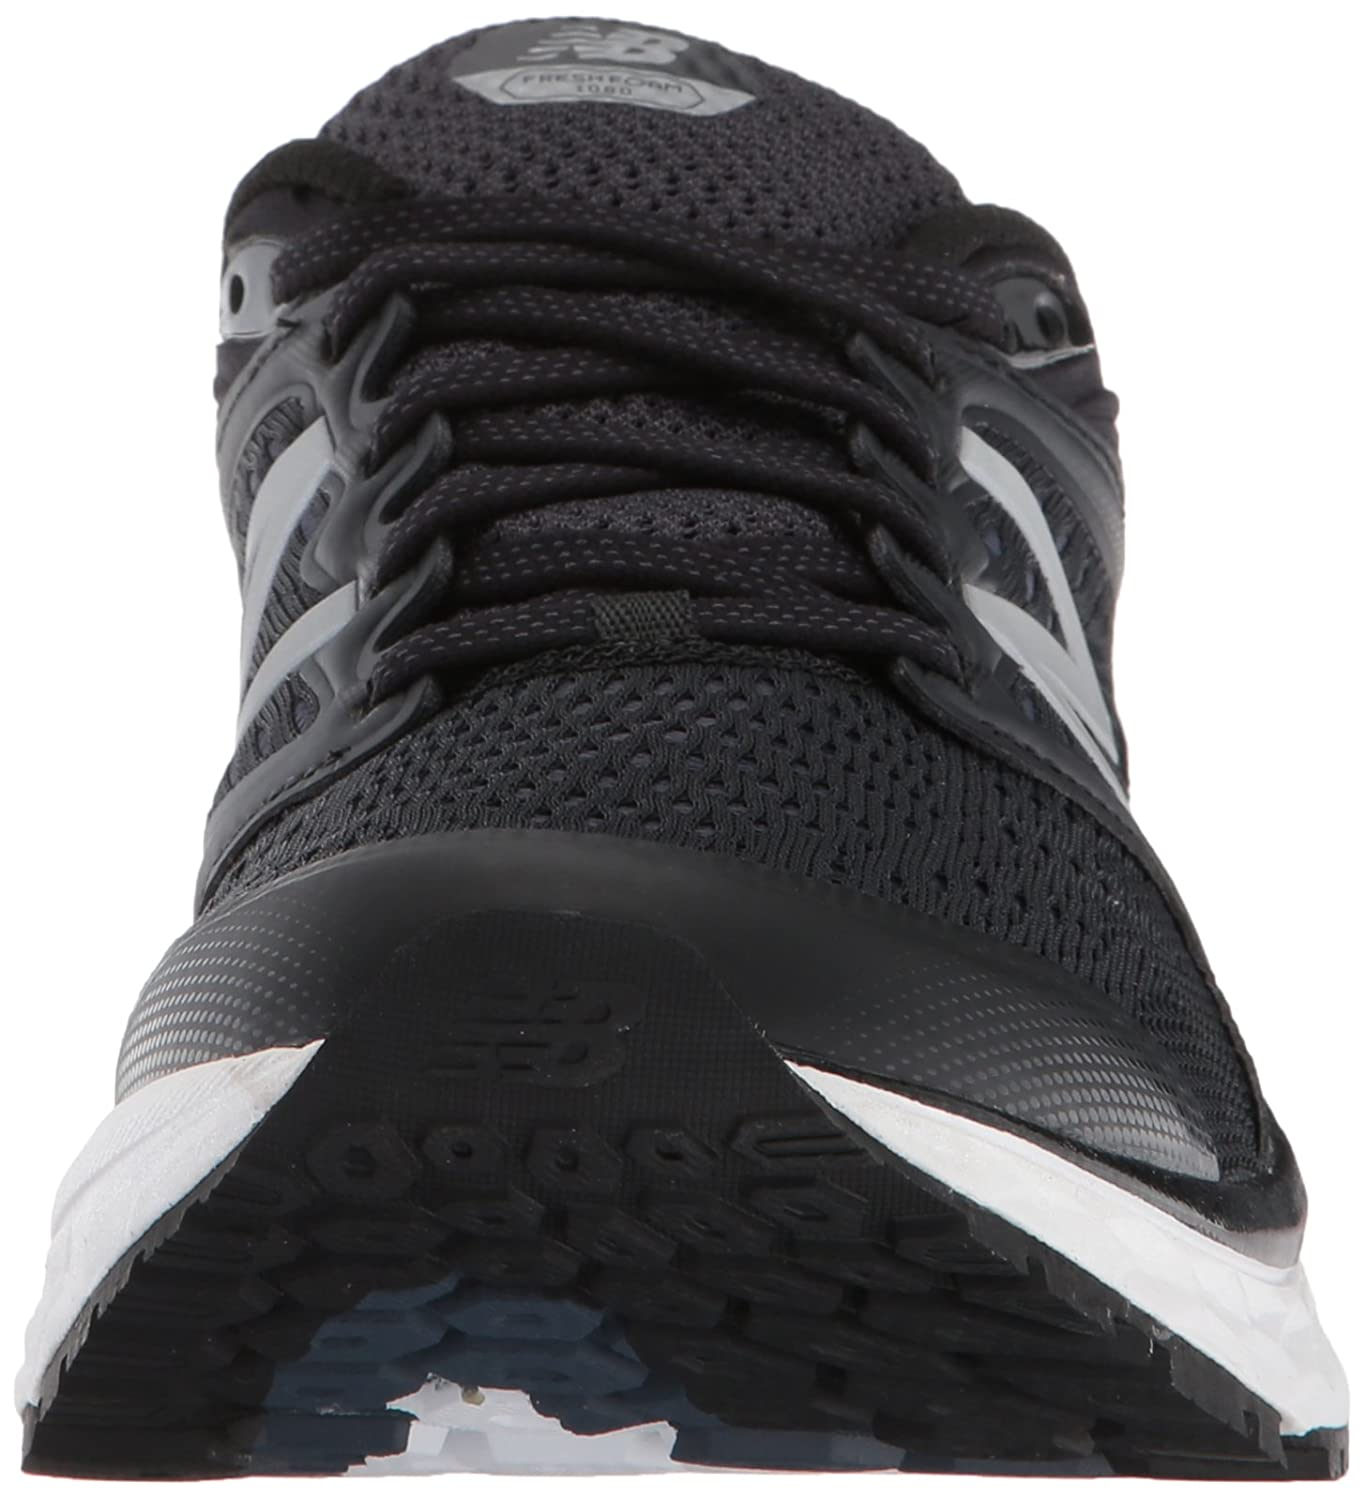 New Balance Women's 1080v8 Fresh Foam Running Shoe B01N5J5BEI 8.5 2E US|Black/White